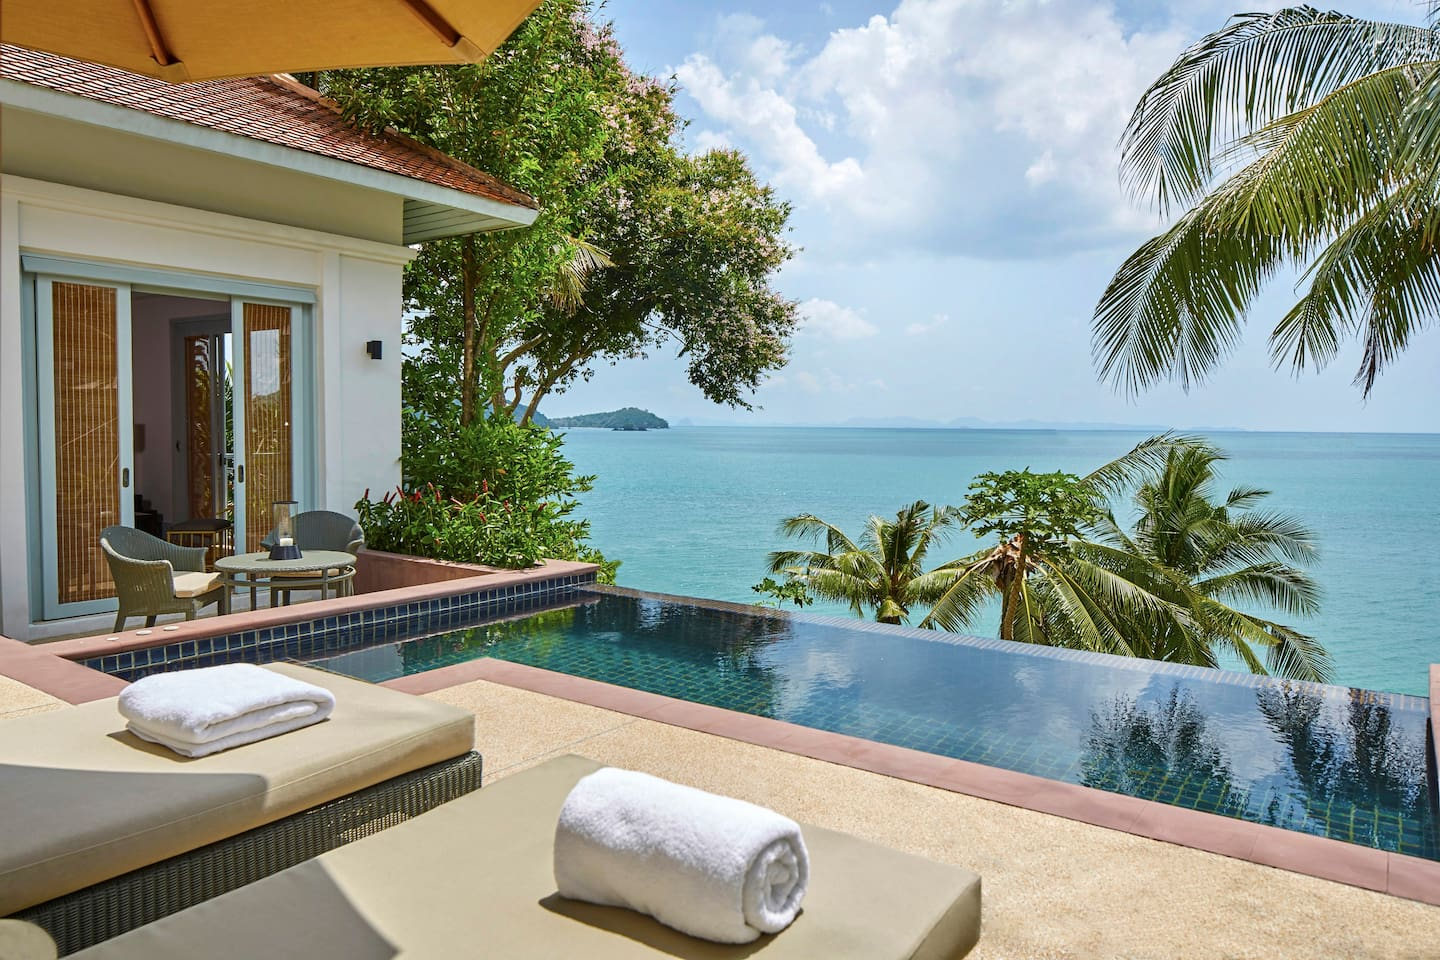 Ocean View Pool Villa - Enjoy the great view of Indian Ocean